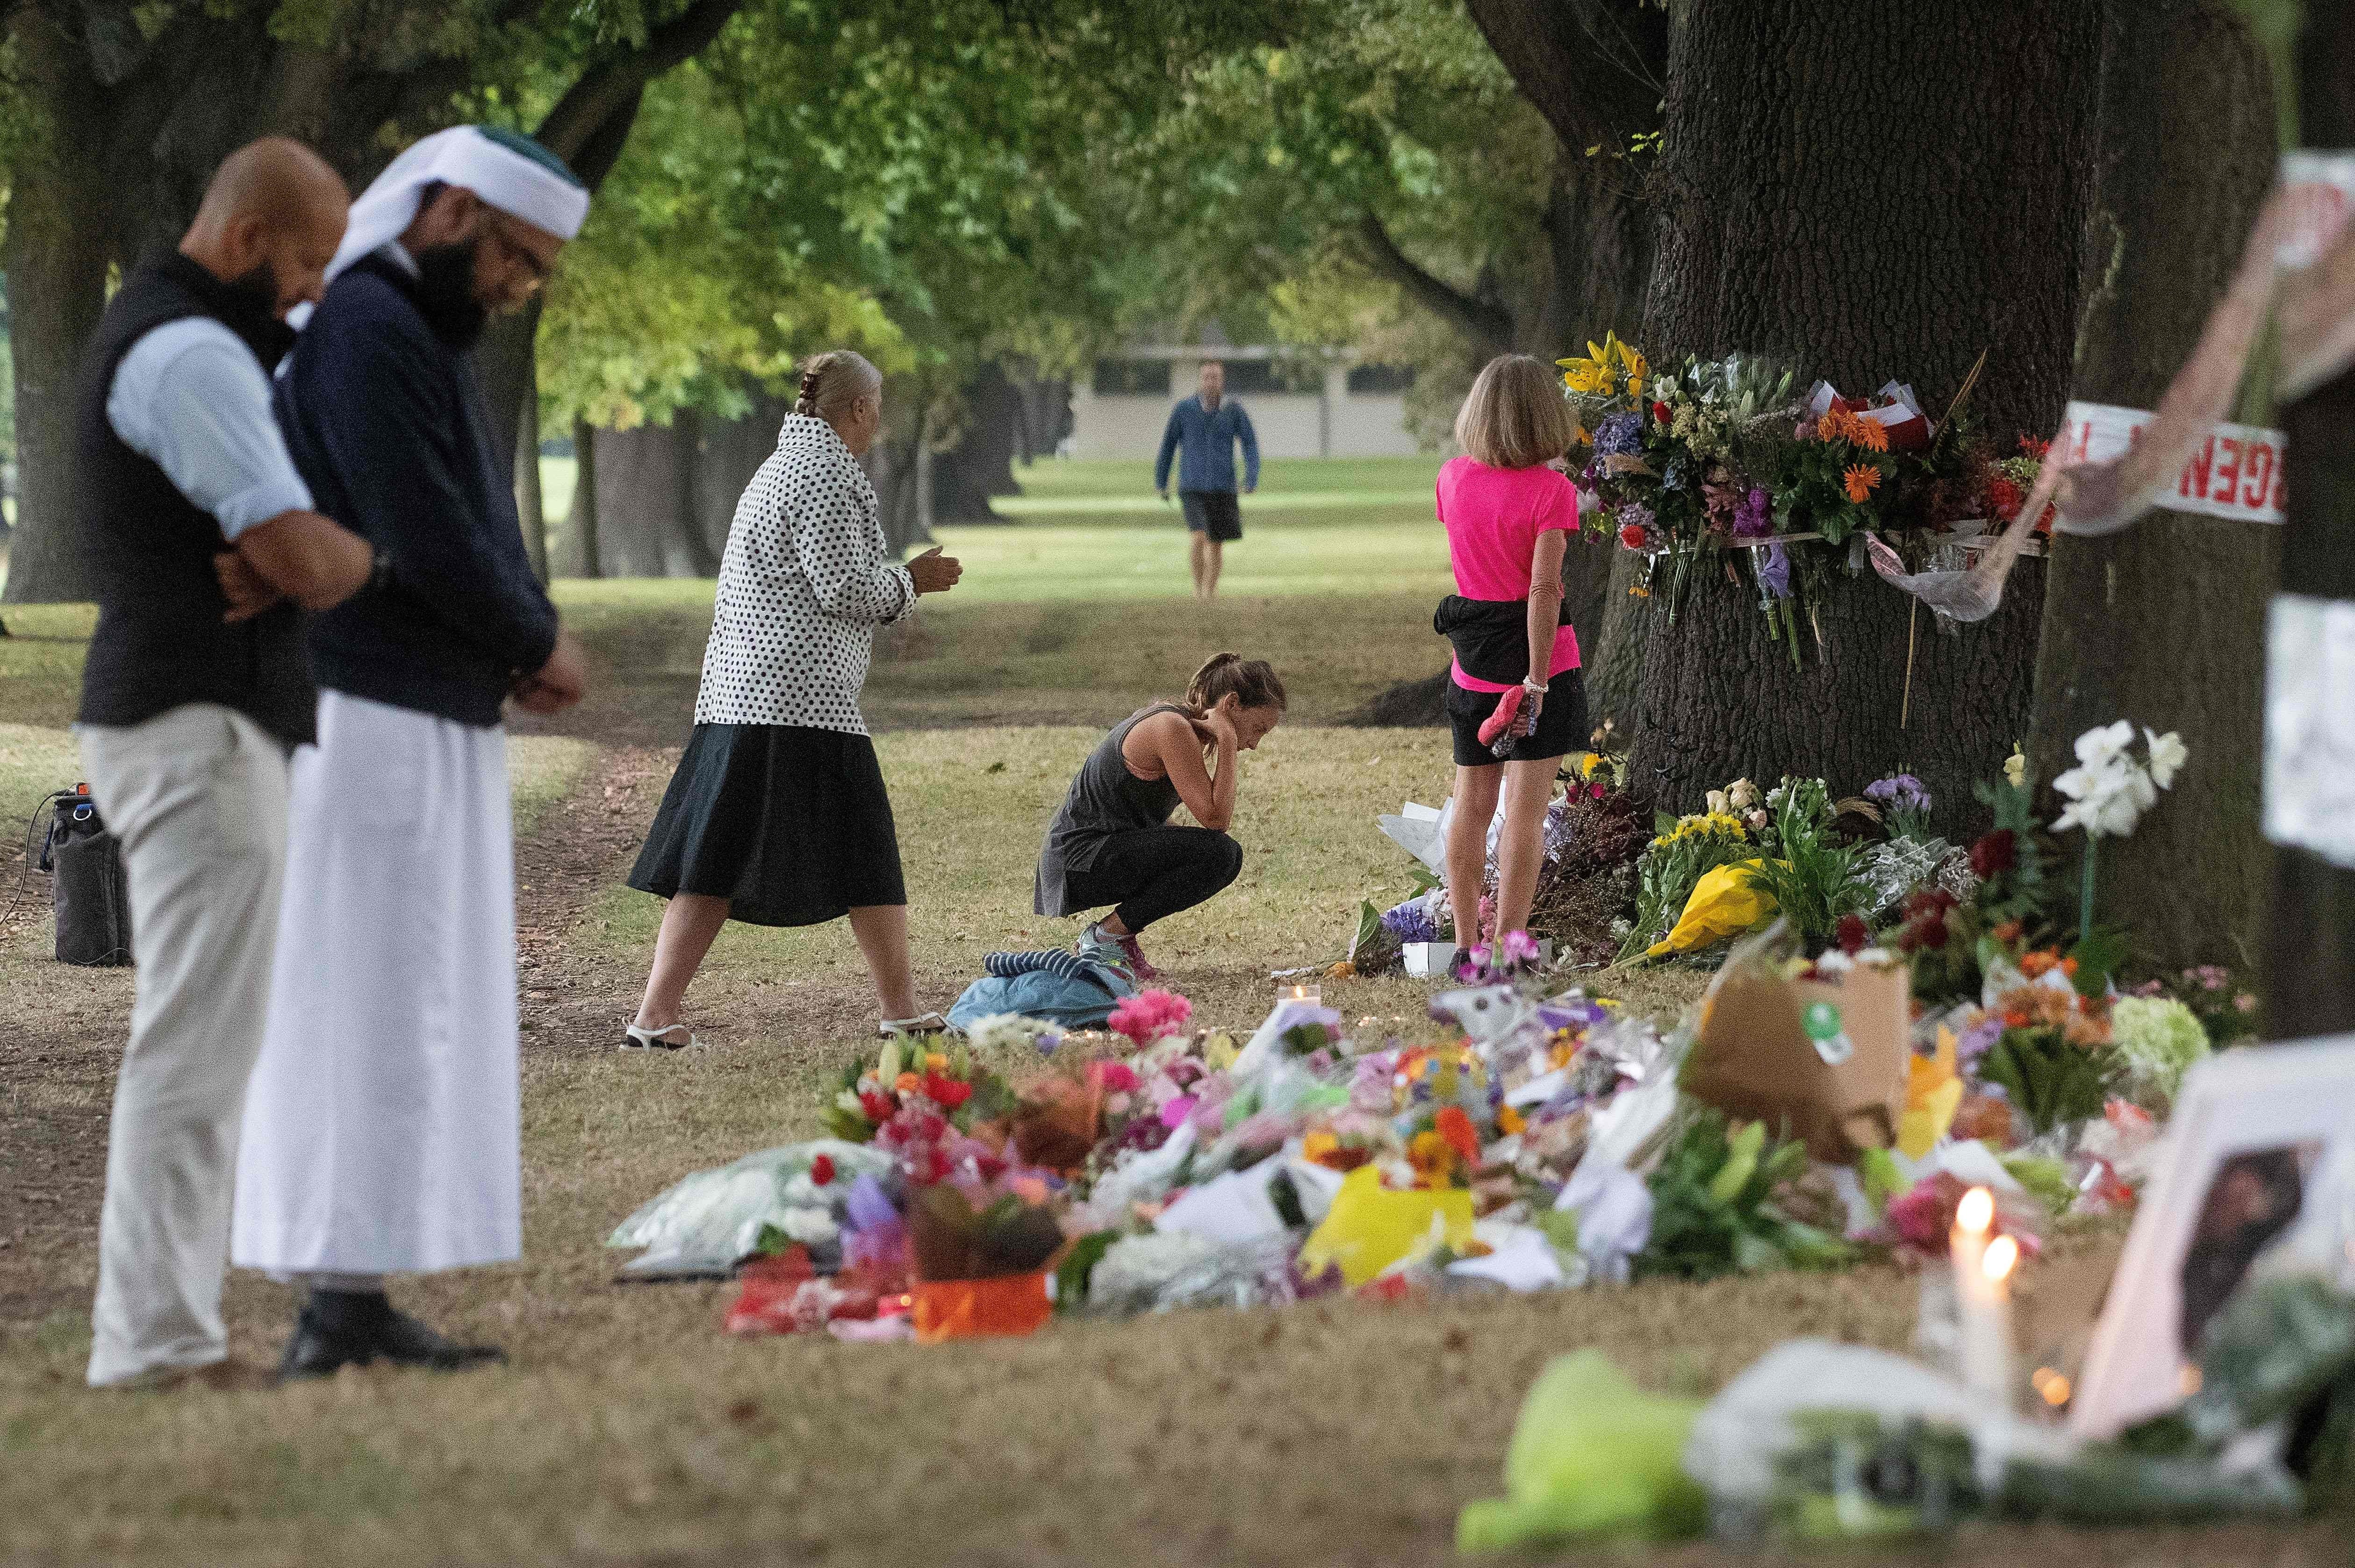 'Shocked' New Zealand Rifle Club Revokes Membership Of Mosque Shootings Suspect